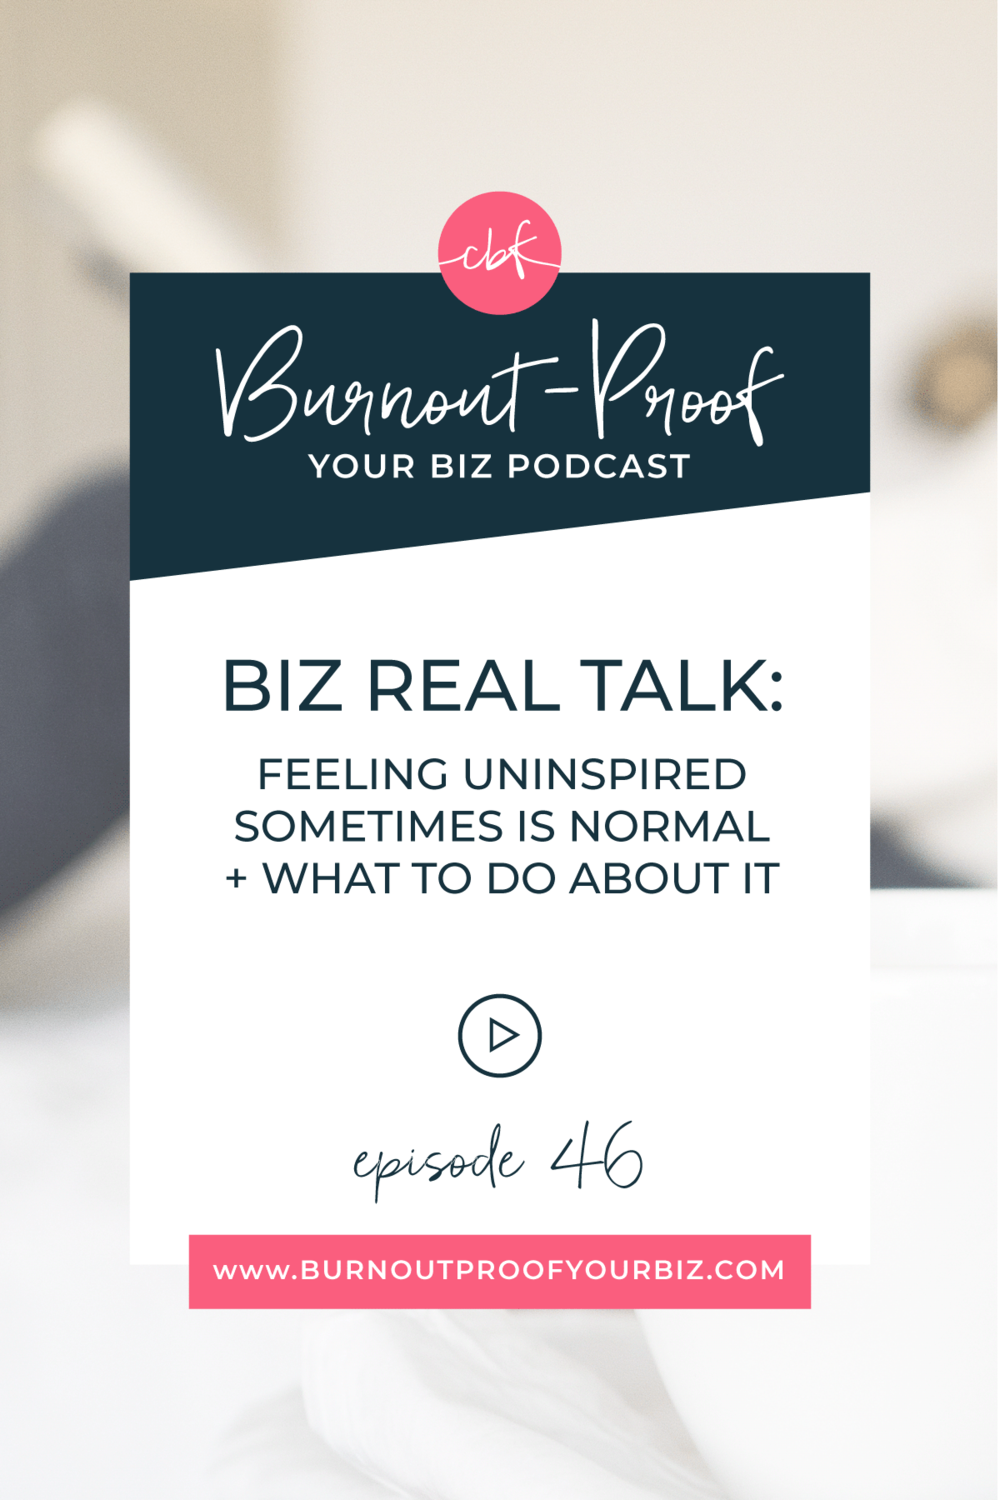 Burnout-Proof Your Biz Podcast with Chelsea B Foster | Episode 046 - Biz Real Talk: Feeling Uninspired Sometimes is Normal + What To Do About It | Learn how to run your biz and live your dream life on your own terms without the fear of burnout.  Business Coach | Workflow & Productivity Specialist | Feeling Uninspired | Feeling Disconnected to your work | The Reality of Running Your Own Business | Behind-the-scenes | Transparency | Vulnerable moments in our business | Ups and Downs of Solo-preneurship | What to do when you feel uninspired | What to do when you feel disconnected to your work | How to get re-inspired in your business | How to realign with your business | Overwhelmed | Stressed-out | Journaling Activity | Creative Entrepreneur | Productivity | Dream life | Freedom lifestyle | Having a business that supports your dream life